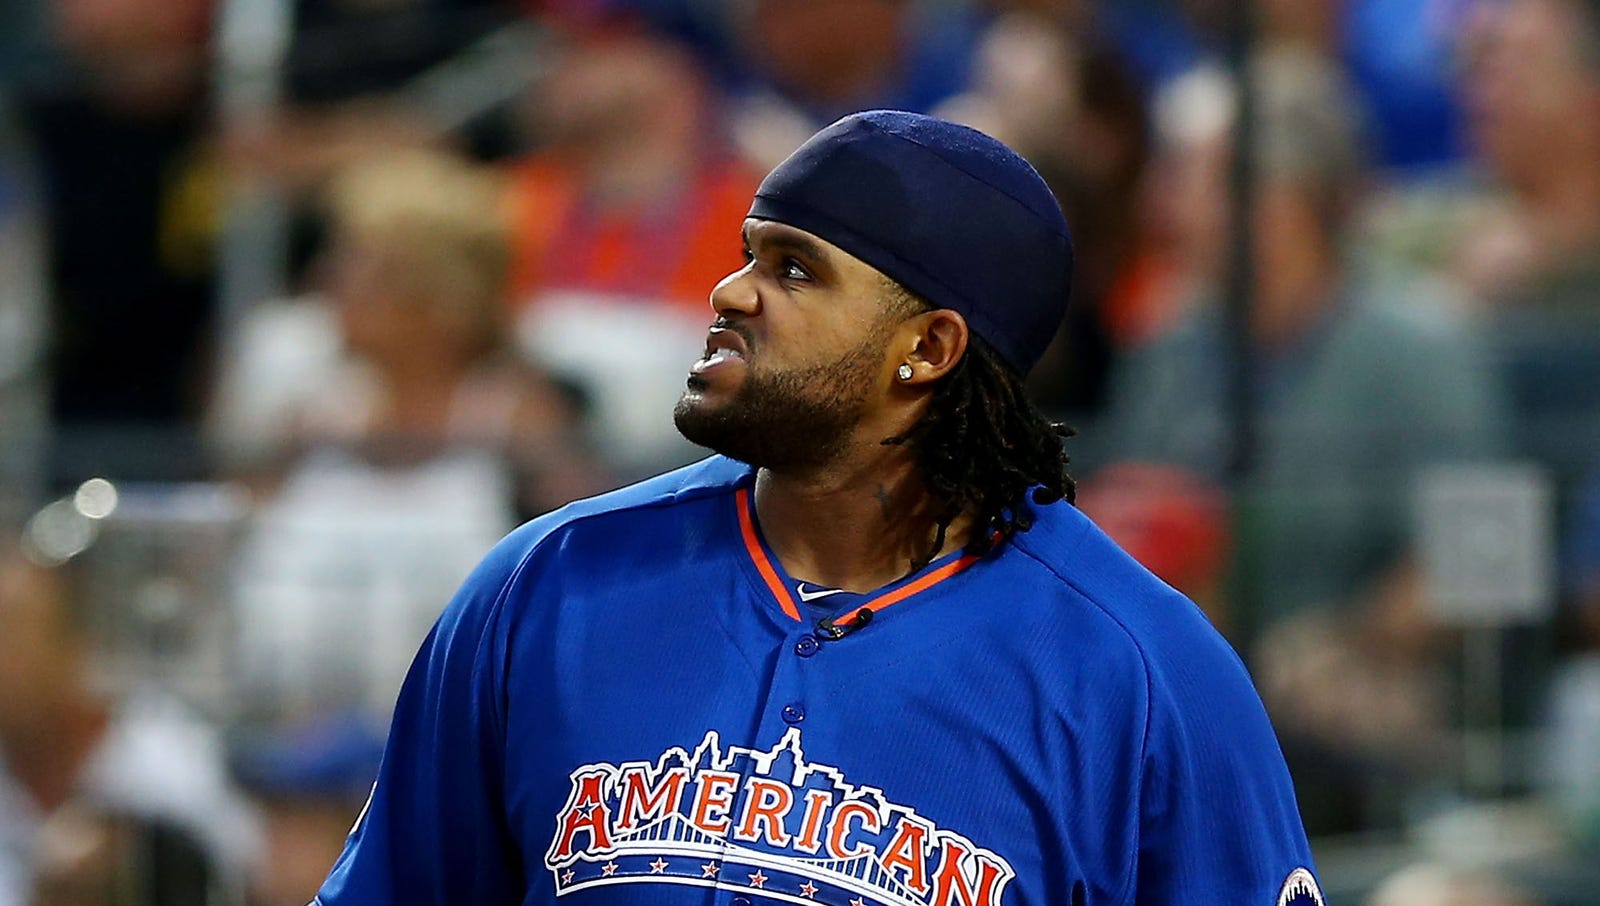 Prince Fielder Dominates Home Run–Eating Contest